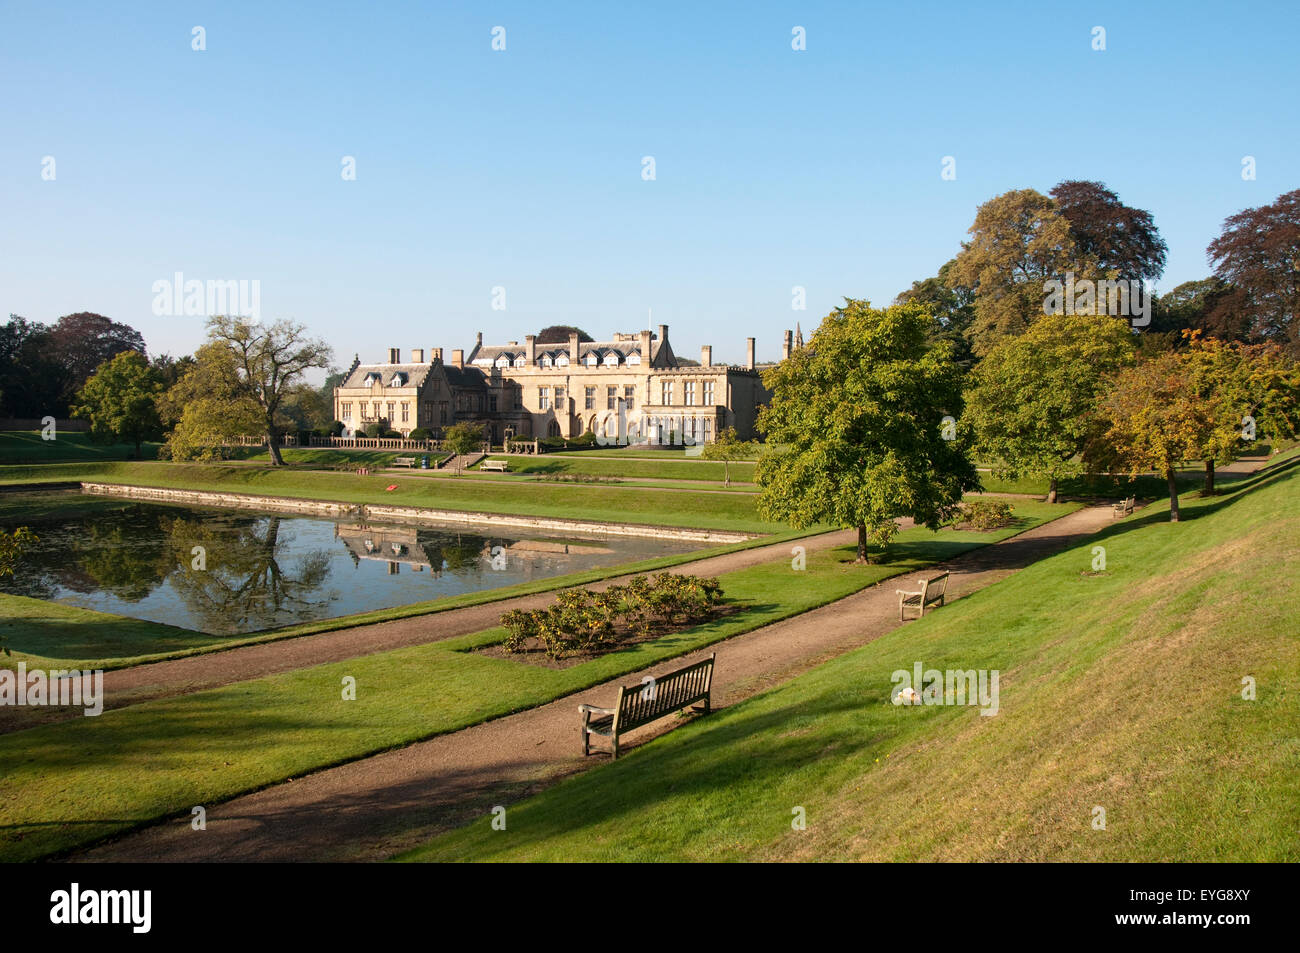 Gardens and Eagle Pond at Newstead Abbey, Nottinghamshire England UK - Stock Image